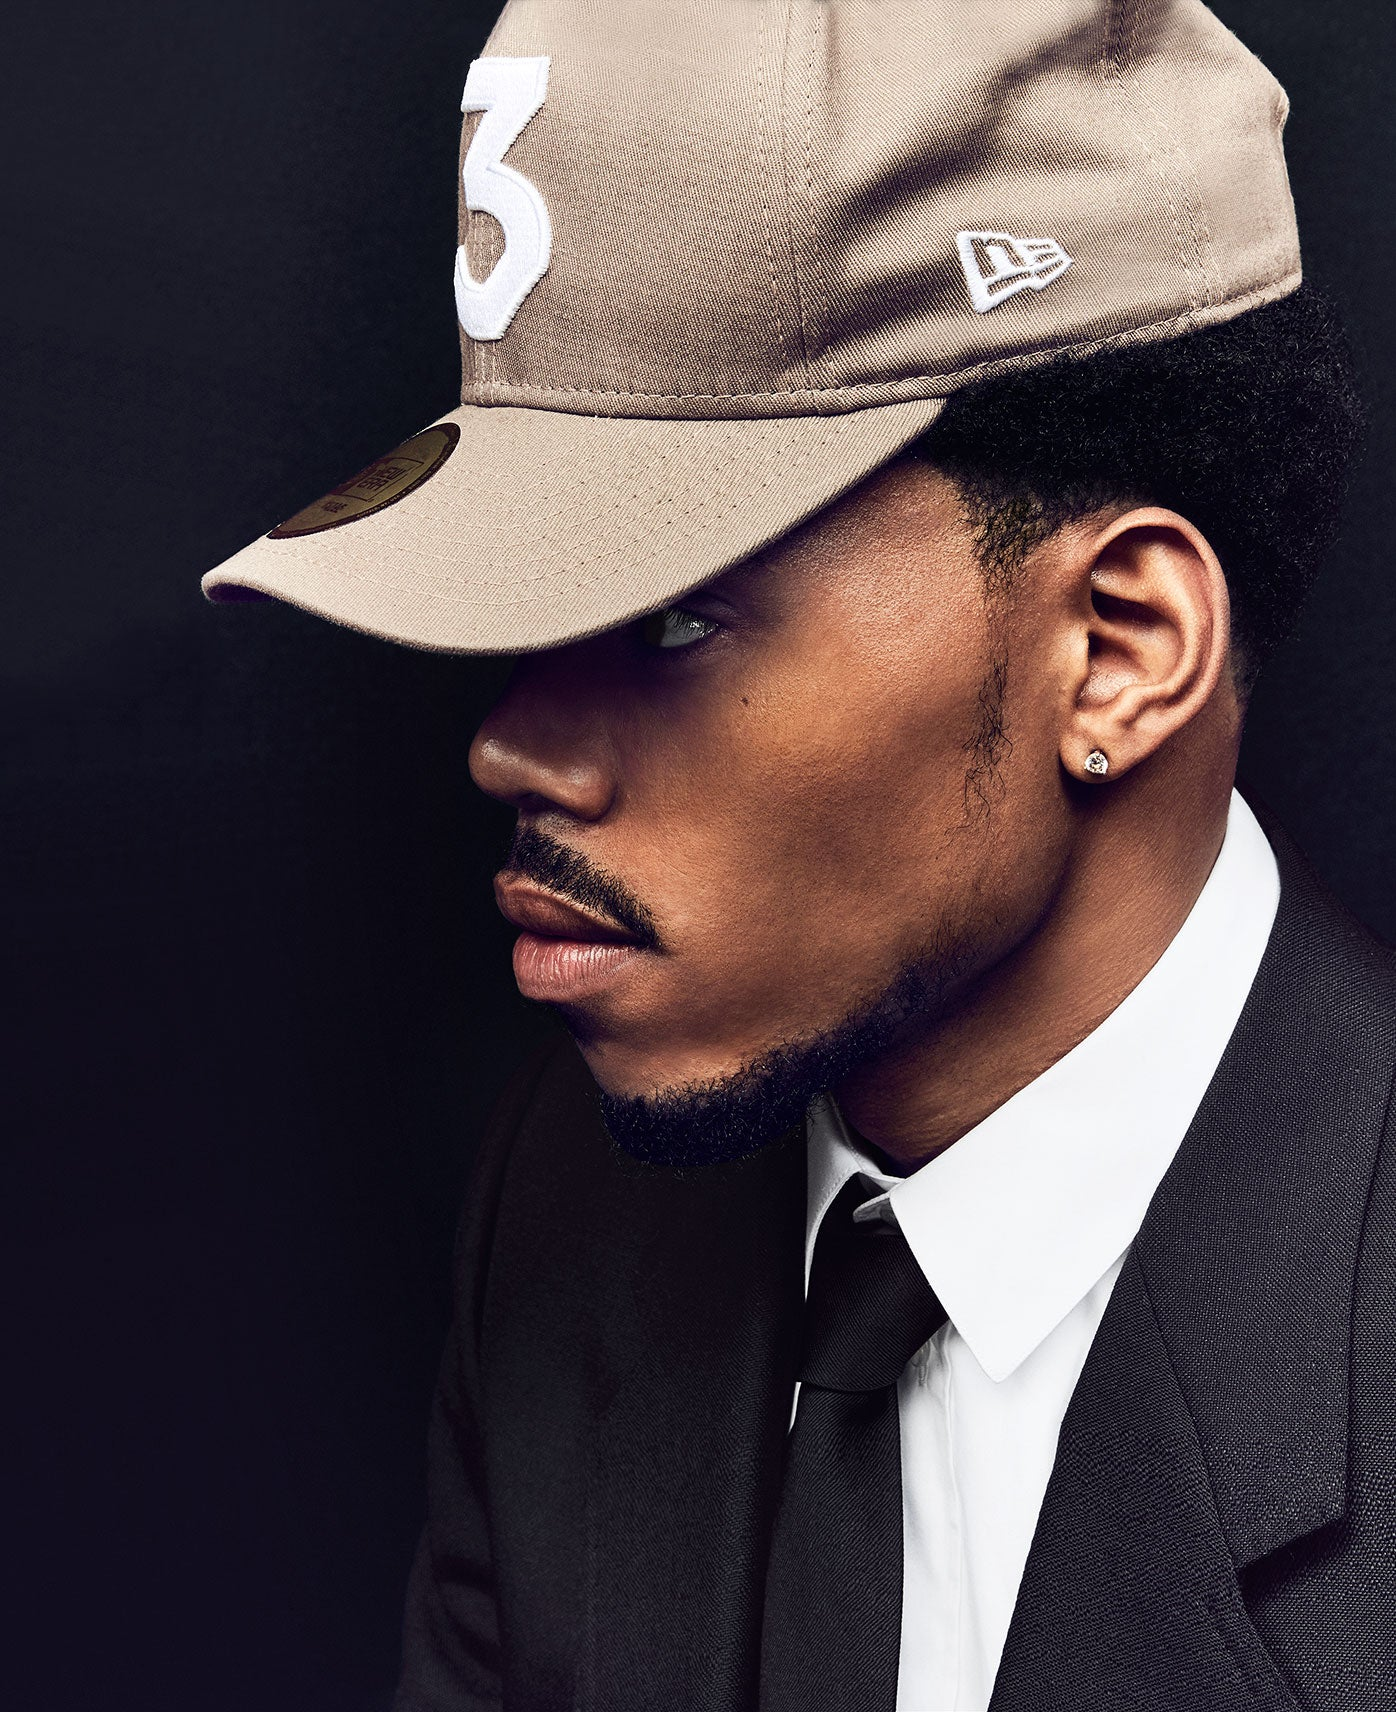 Chance The Rapper Invites Hearing Impaired Fans To Attend His ESSENCE Fest Show For Free